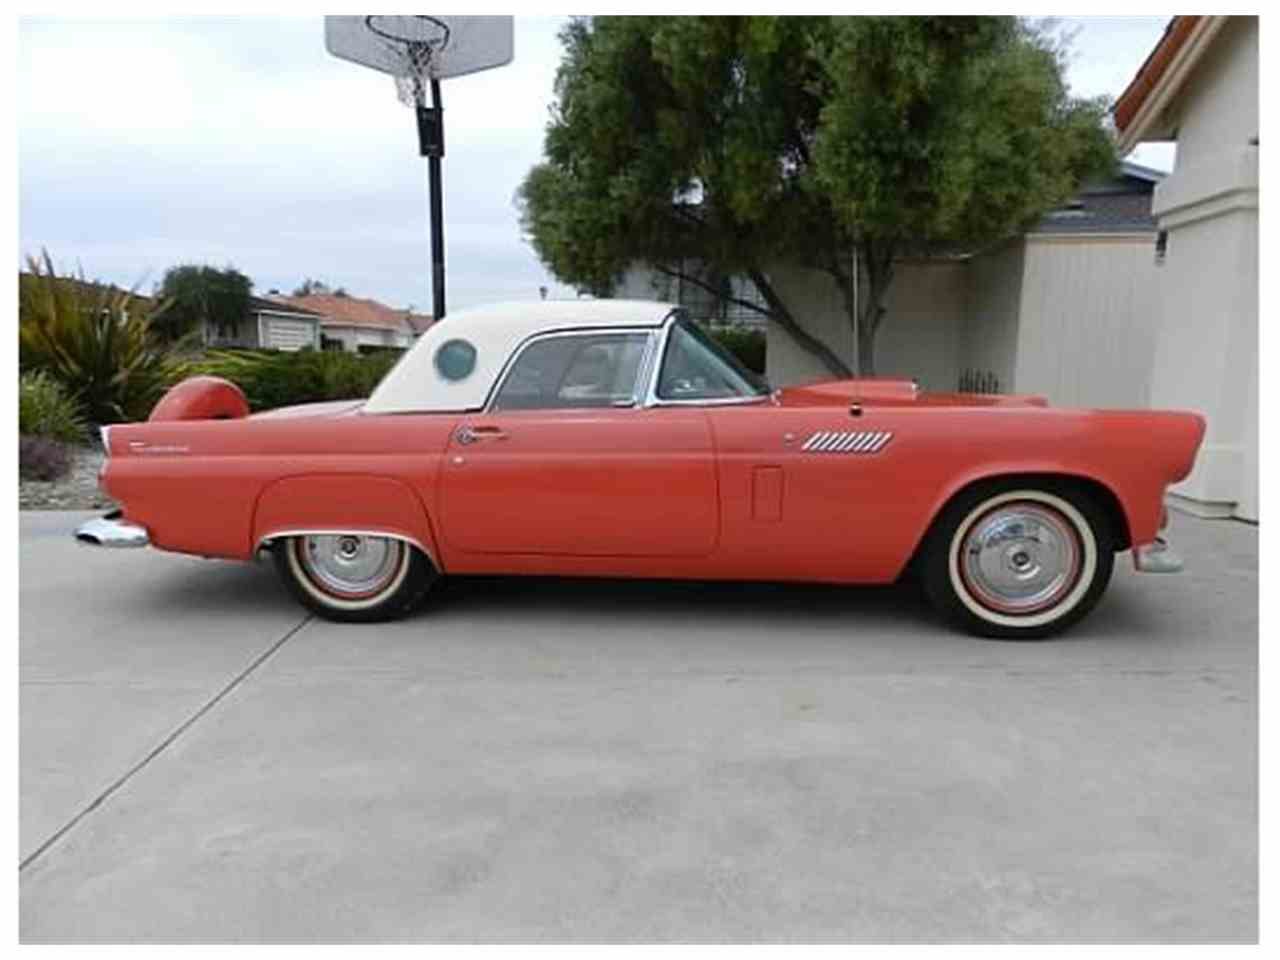 Large Picture of Classic 1956 Ford Thunderbird located in California - $39,800.00 - C1JY